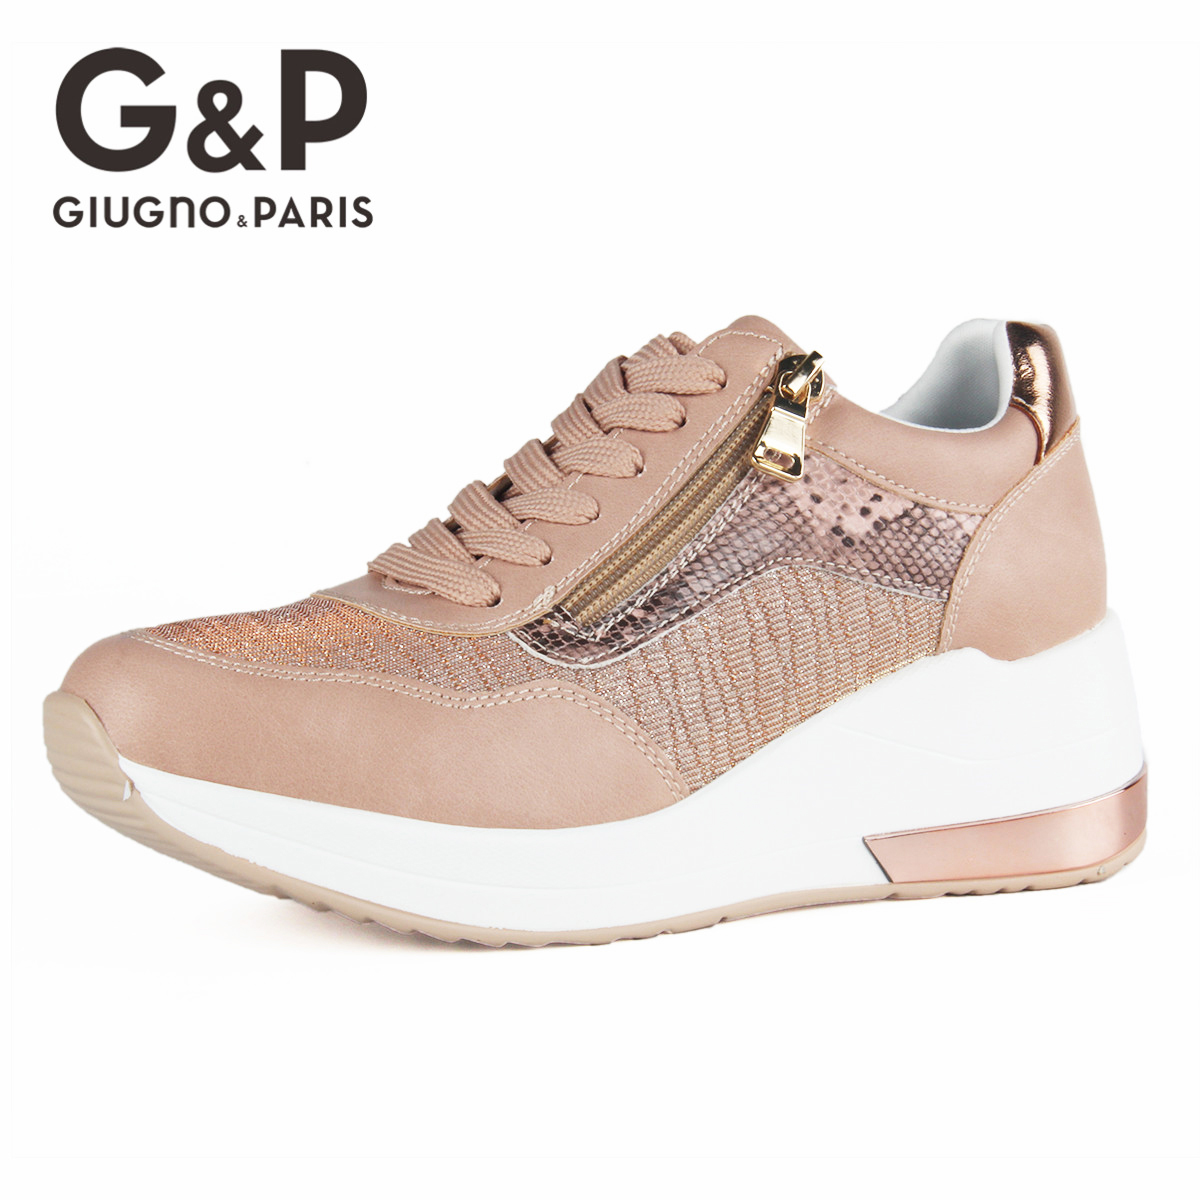 Brand Sneakers Women Breathable Shoes New Design 2020 Casual Platform Wedge Fashion Sneaker With Zipper Easy to Wear 5